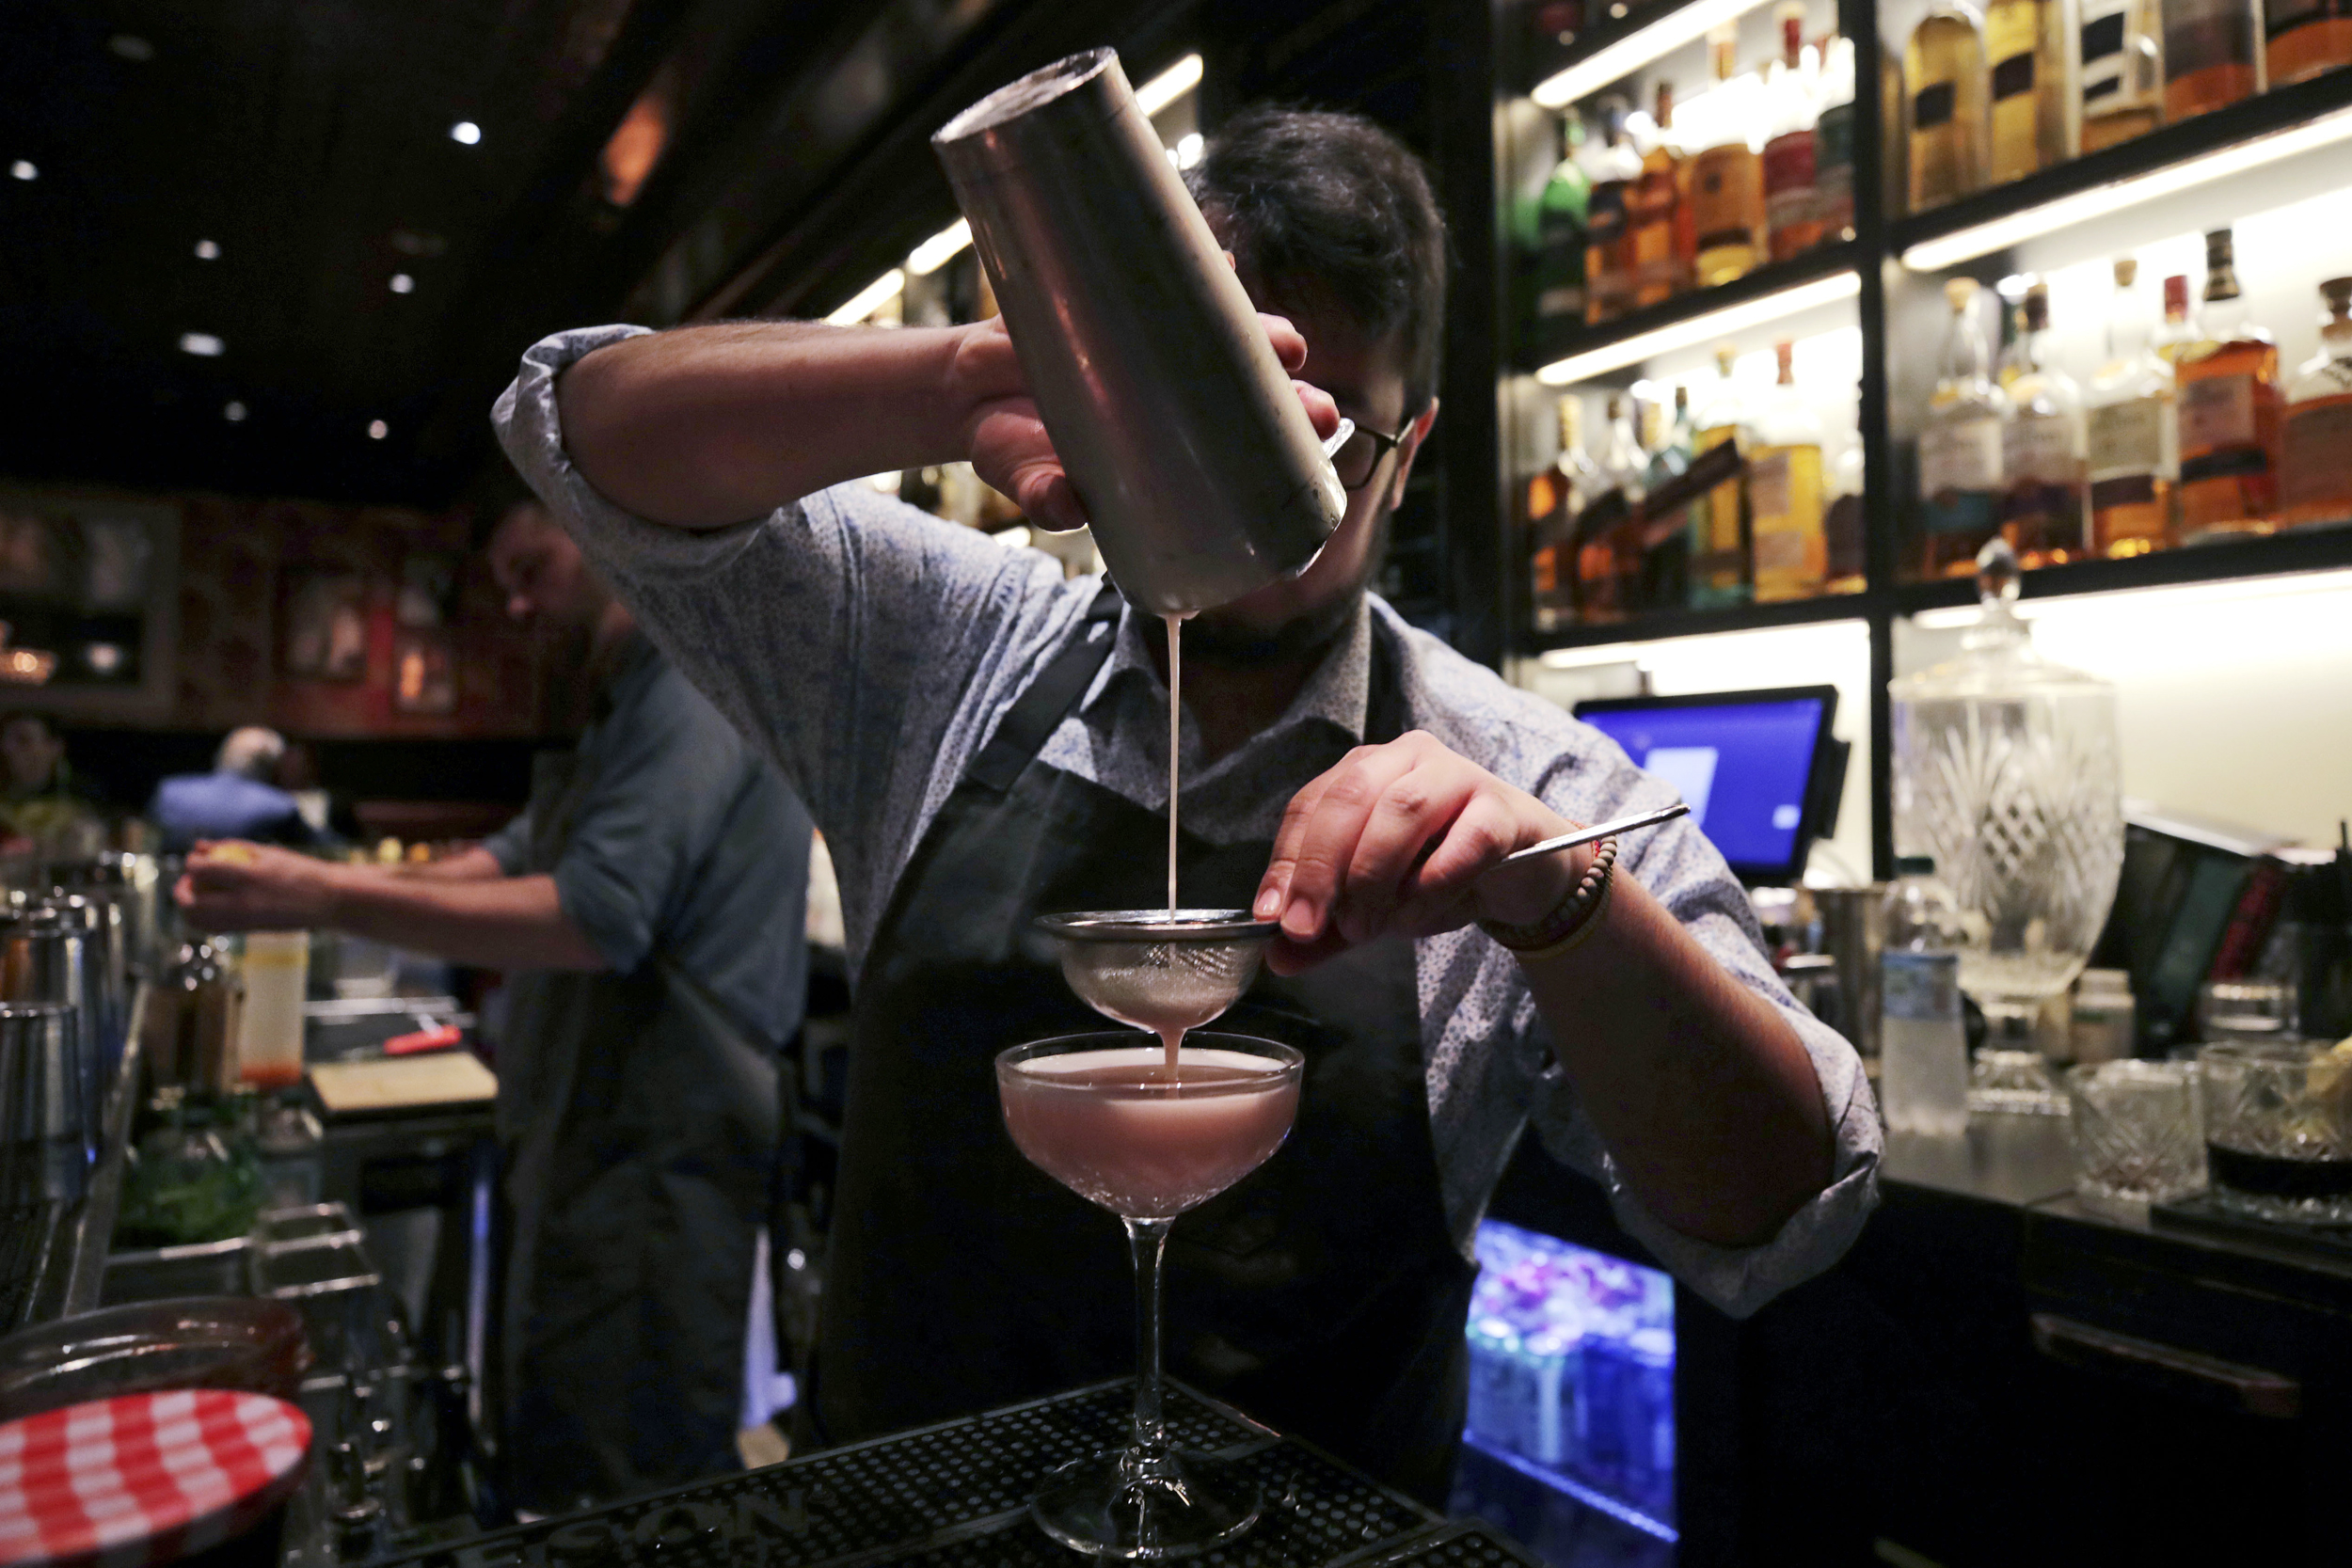 The pandemic has renewed calls to overturn Massachusetts decades-long ban on happy hour